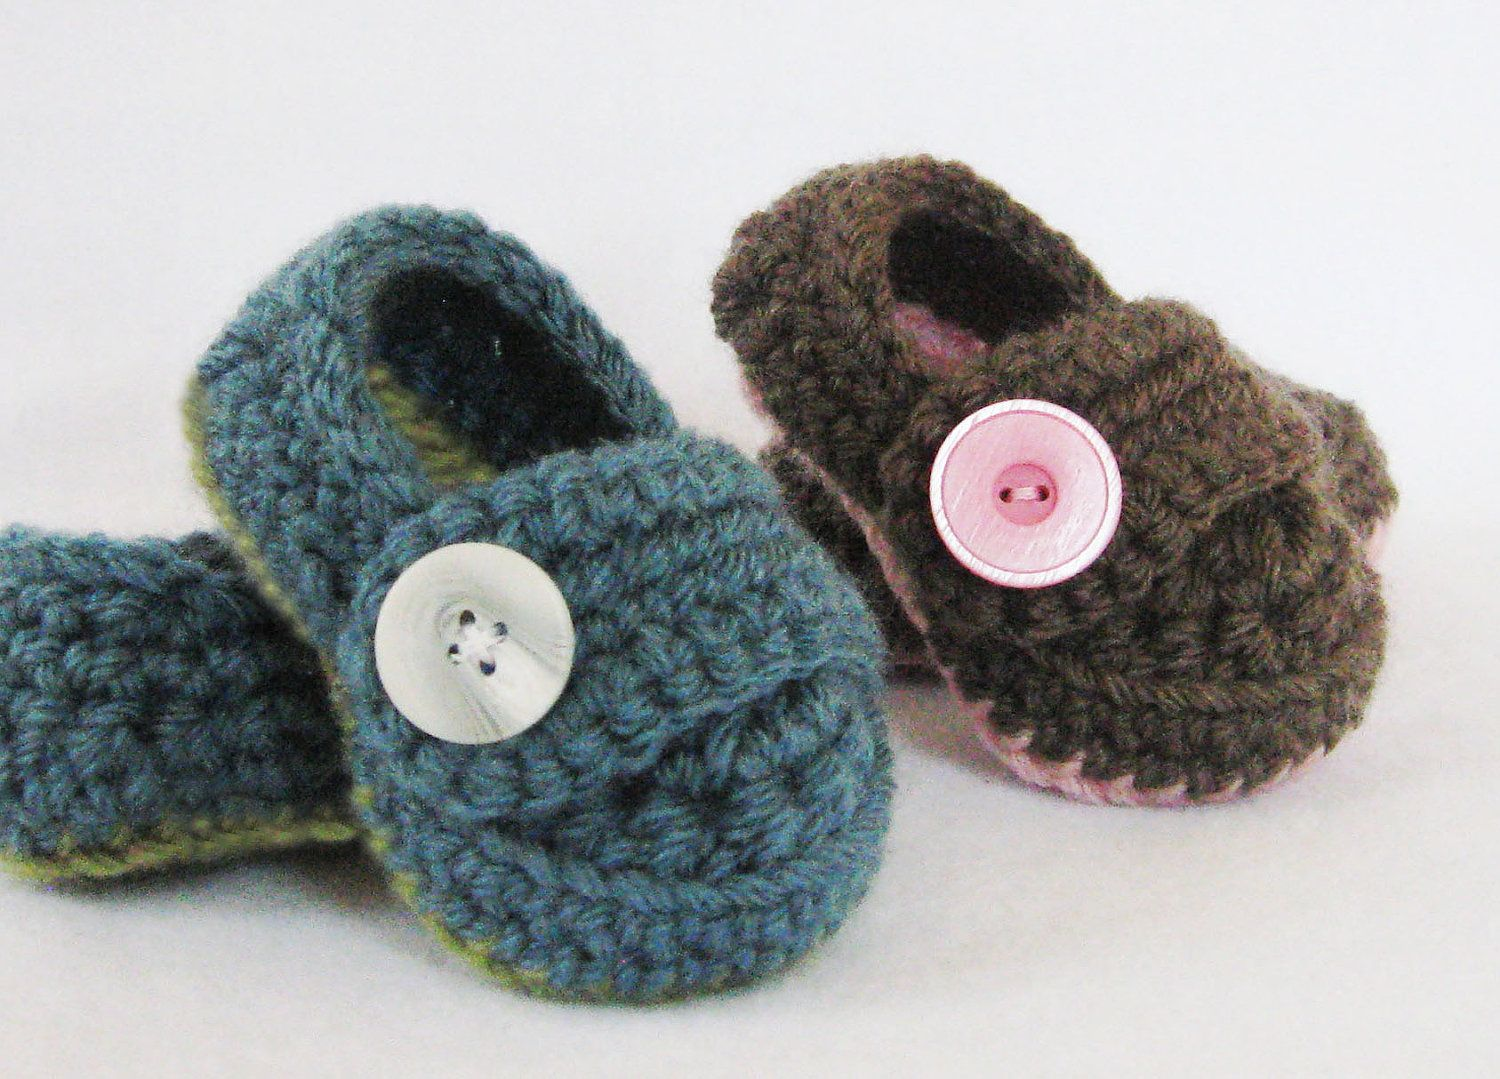 Baby crochet pattern button strap booties 5 sizes included from baby crochet pattern button strap booties 5 sizes included from newborn 24 months instant download bankloansurffo Image collections